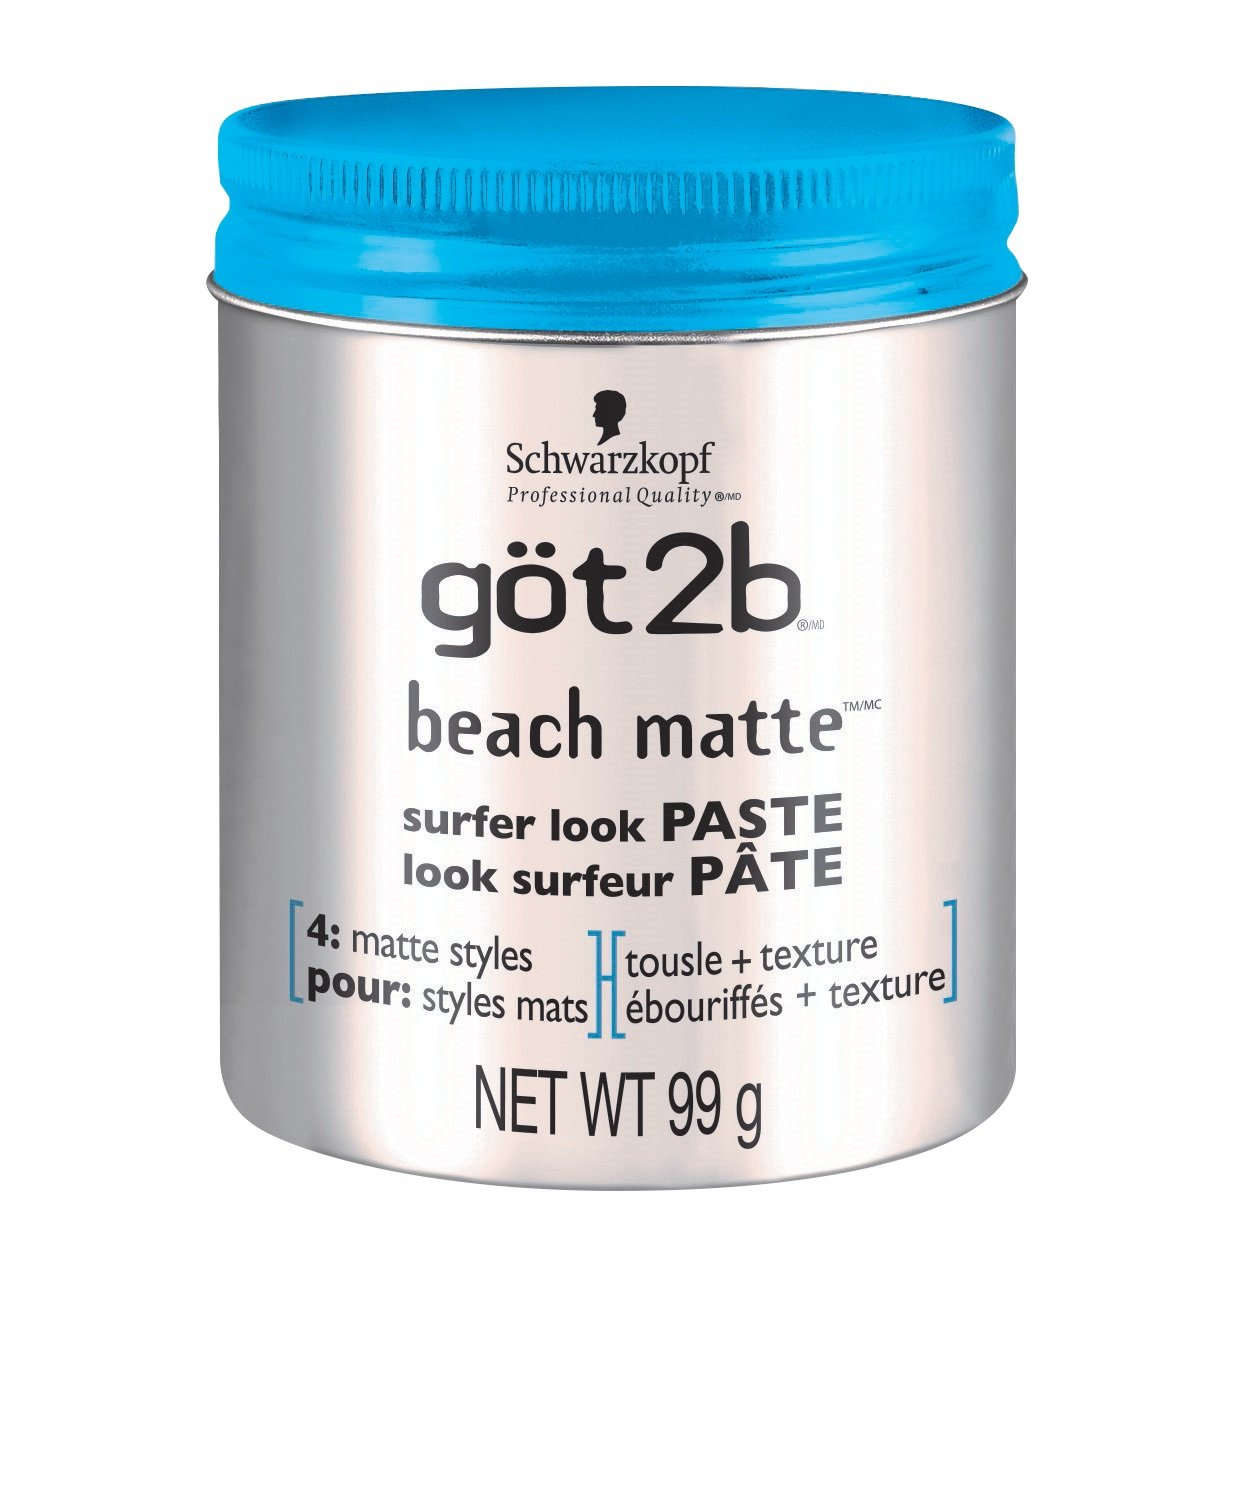 got2b Beach Matte Surfer Look Paste for Matte Styles, 99g (2117589) Henkel Canada